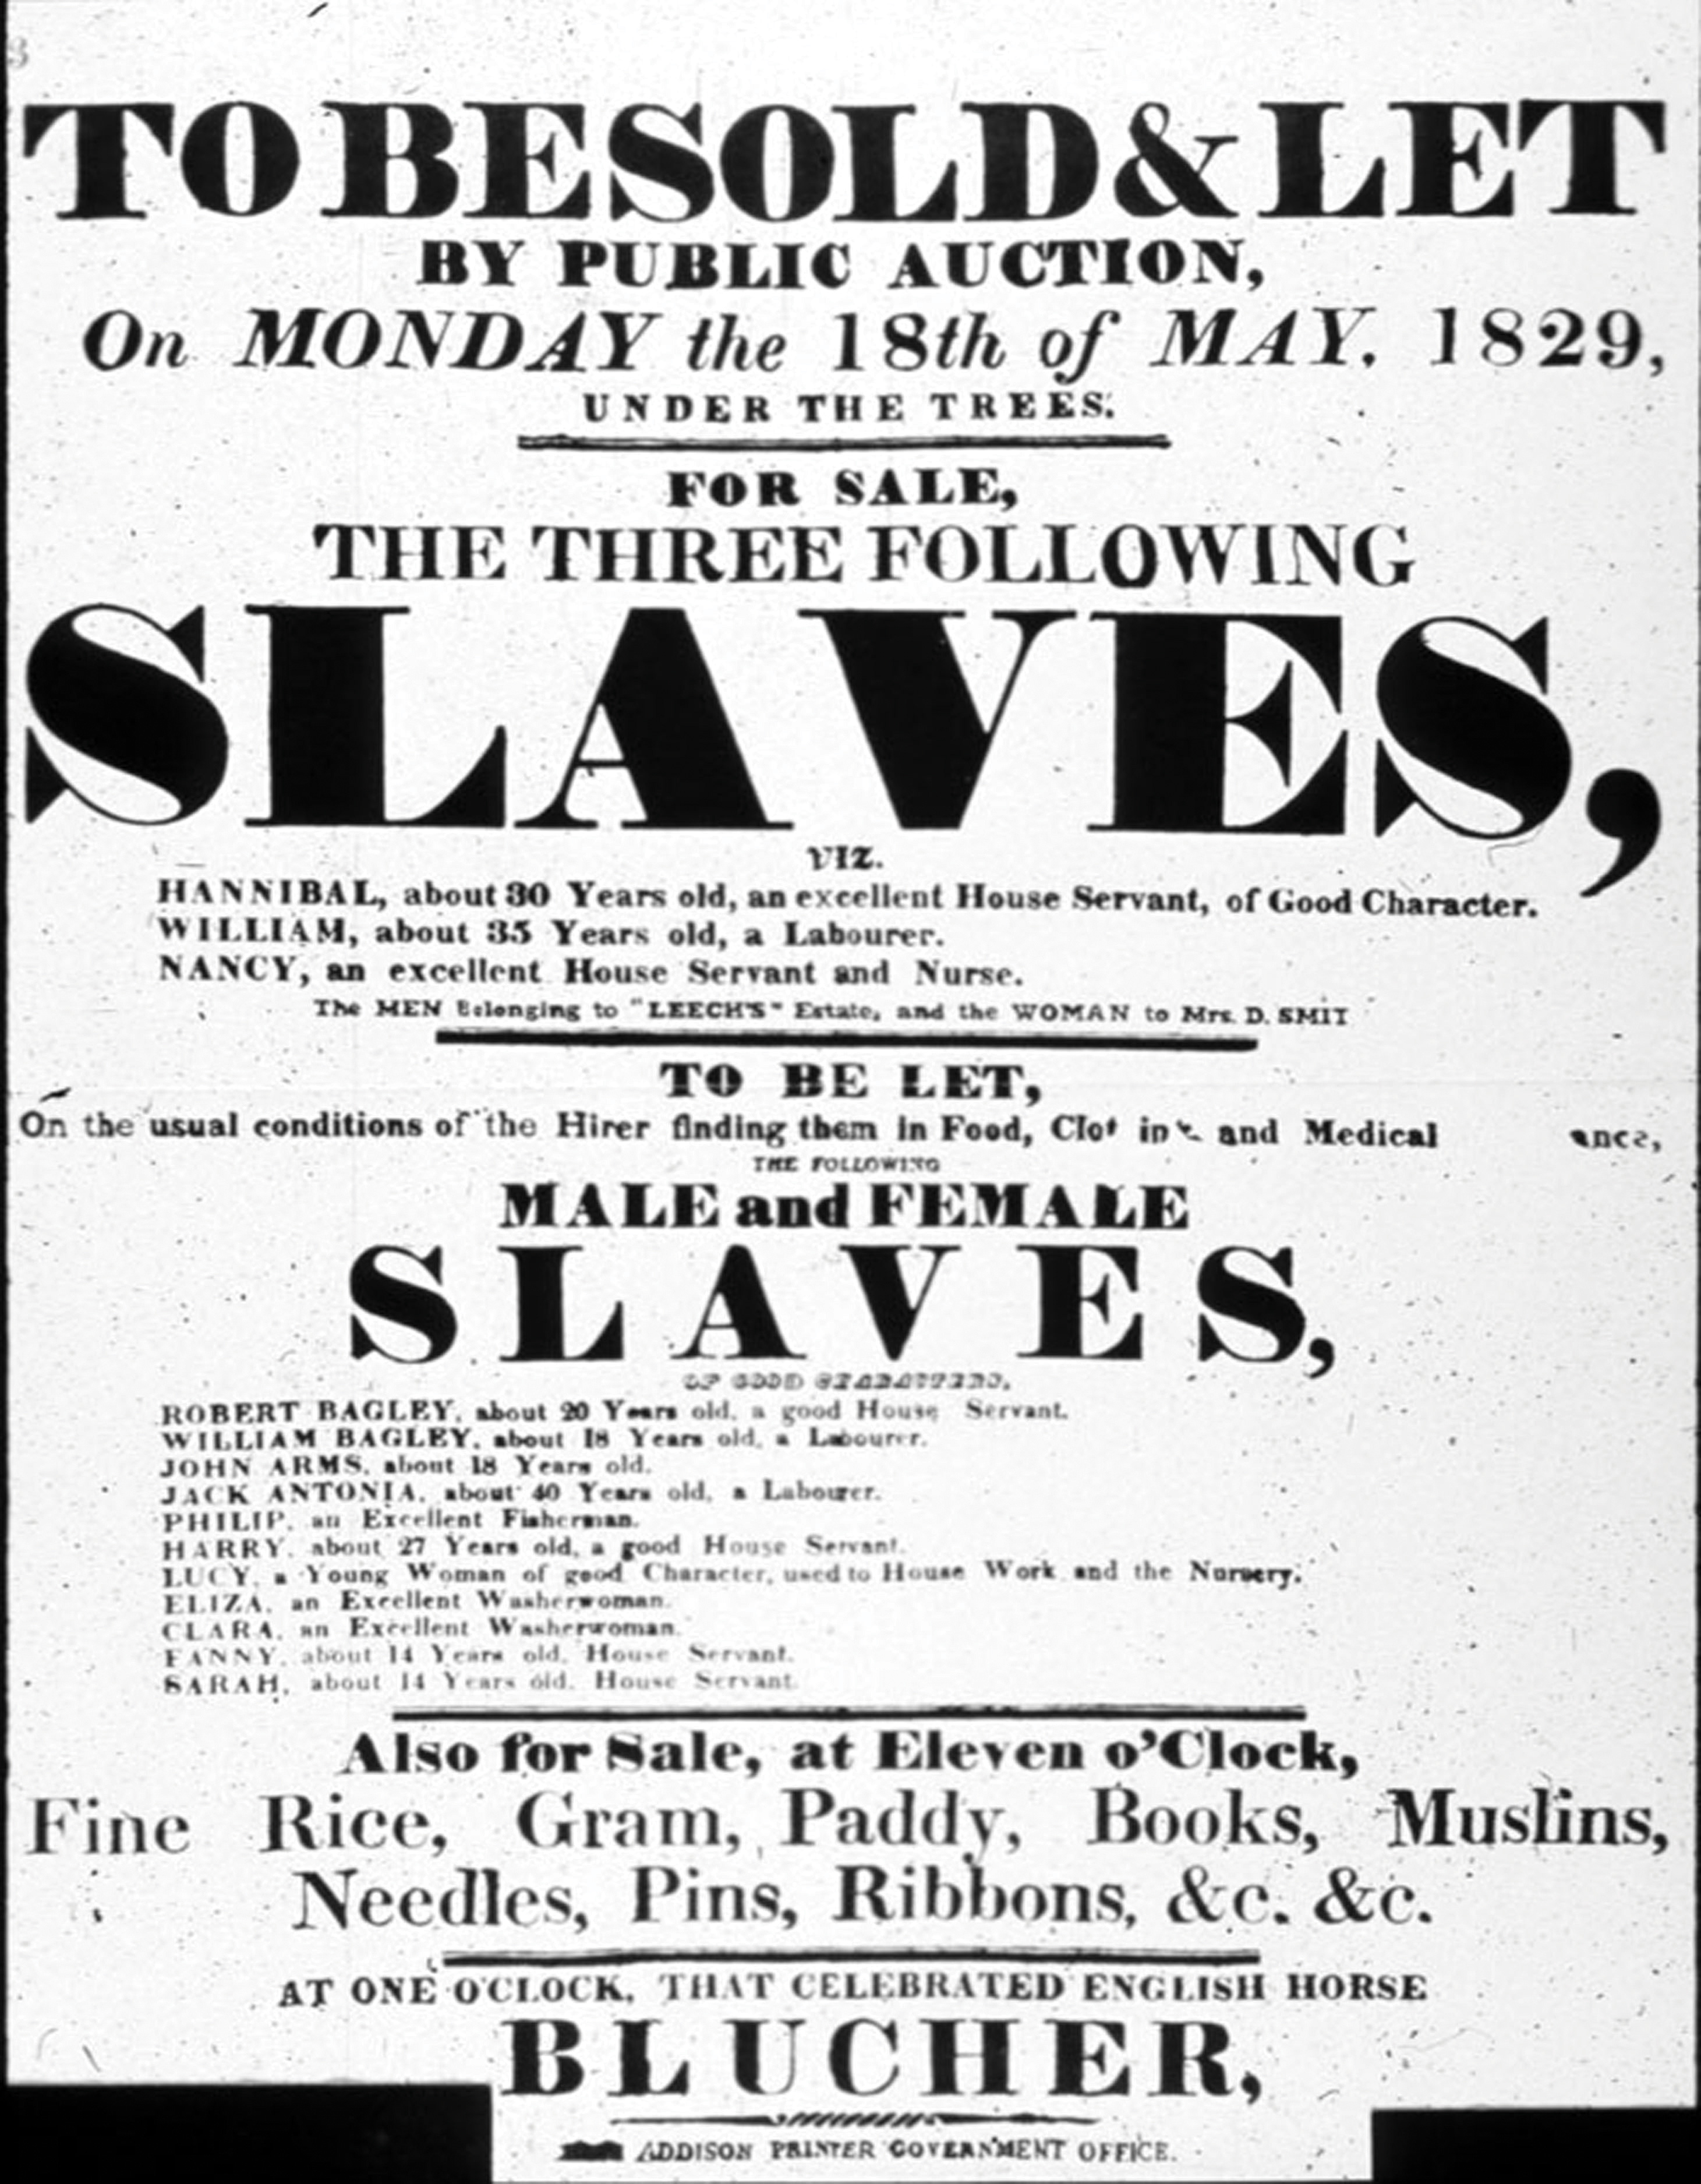 A flyer for buying slaves